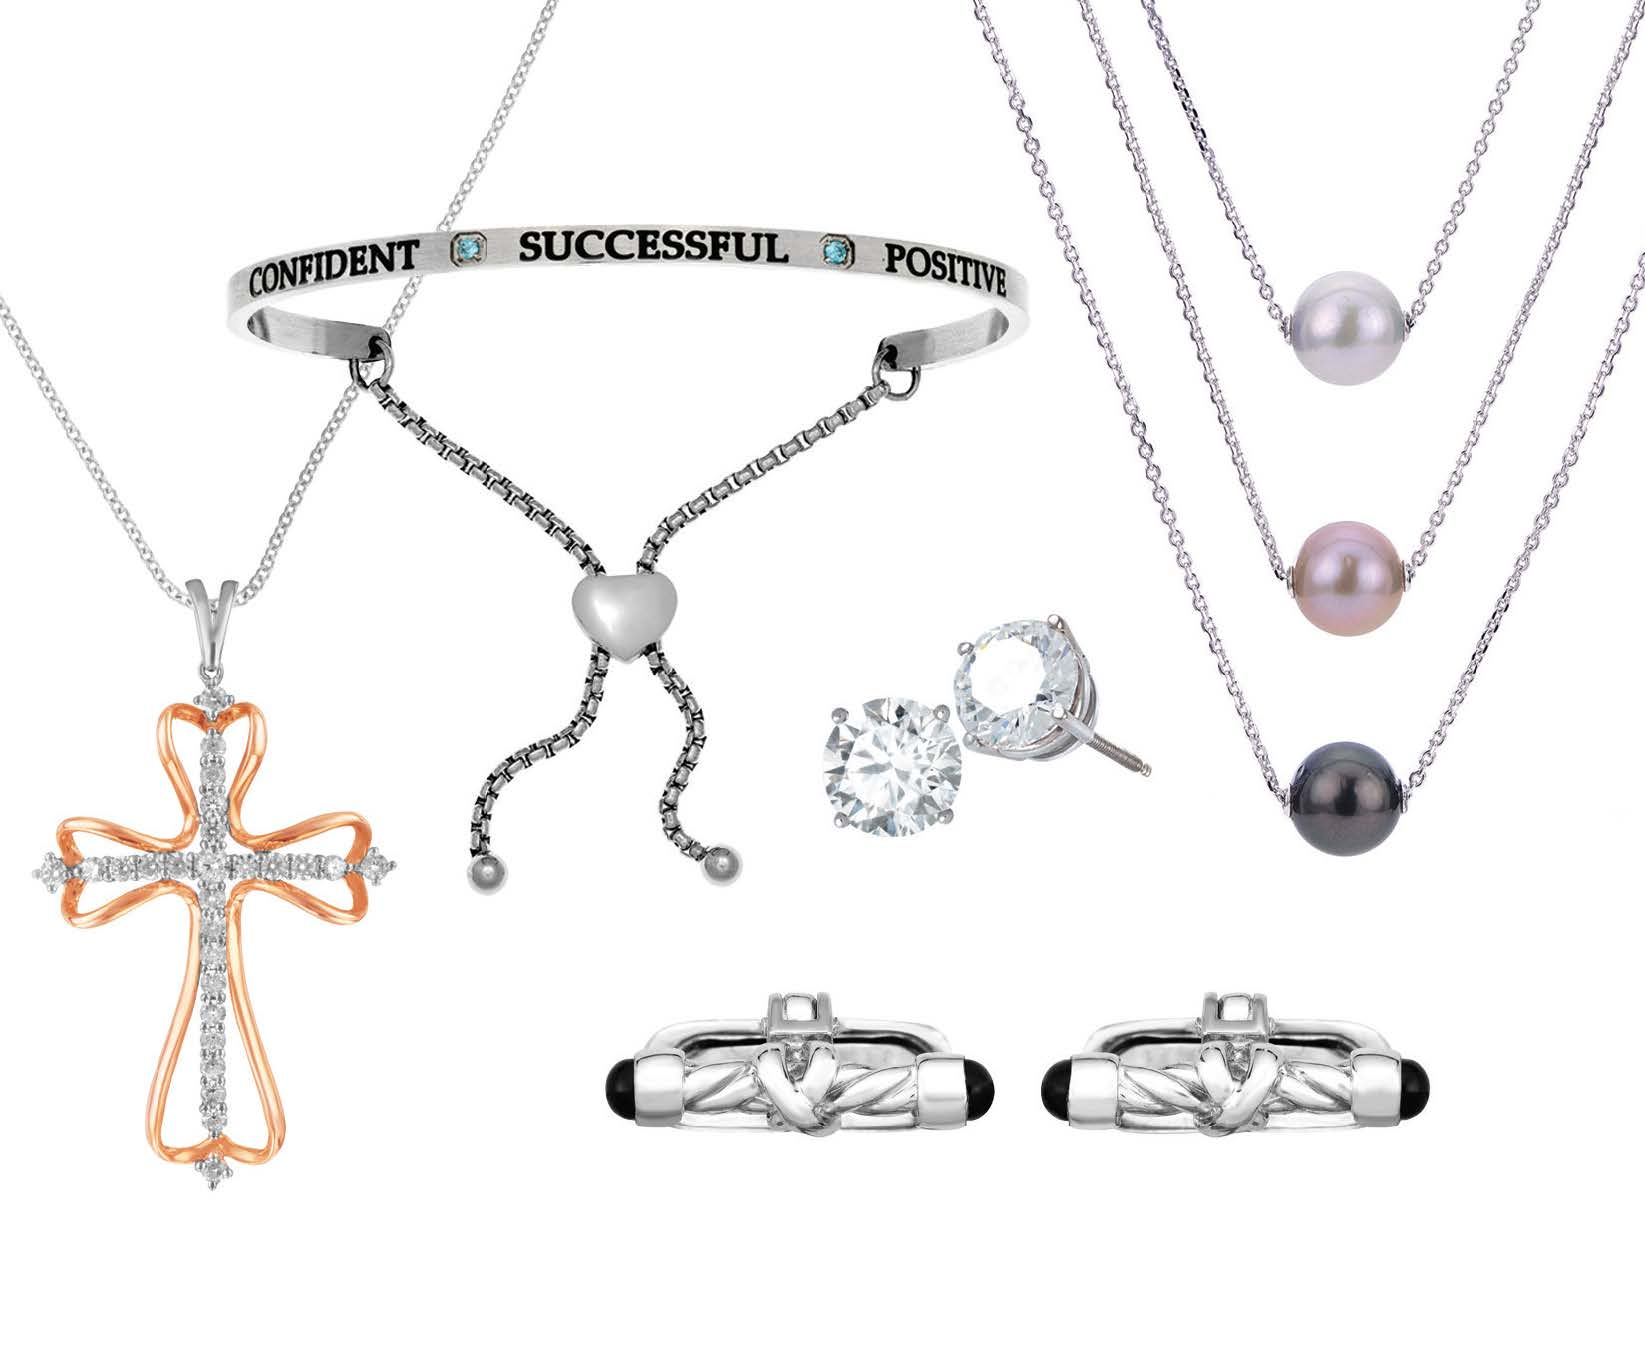 Gift Guide: Dads, Grads & Special Occasions at Houston Jewelry